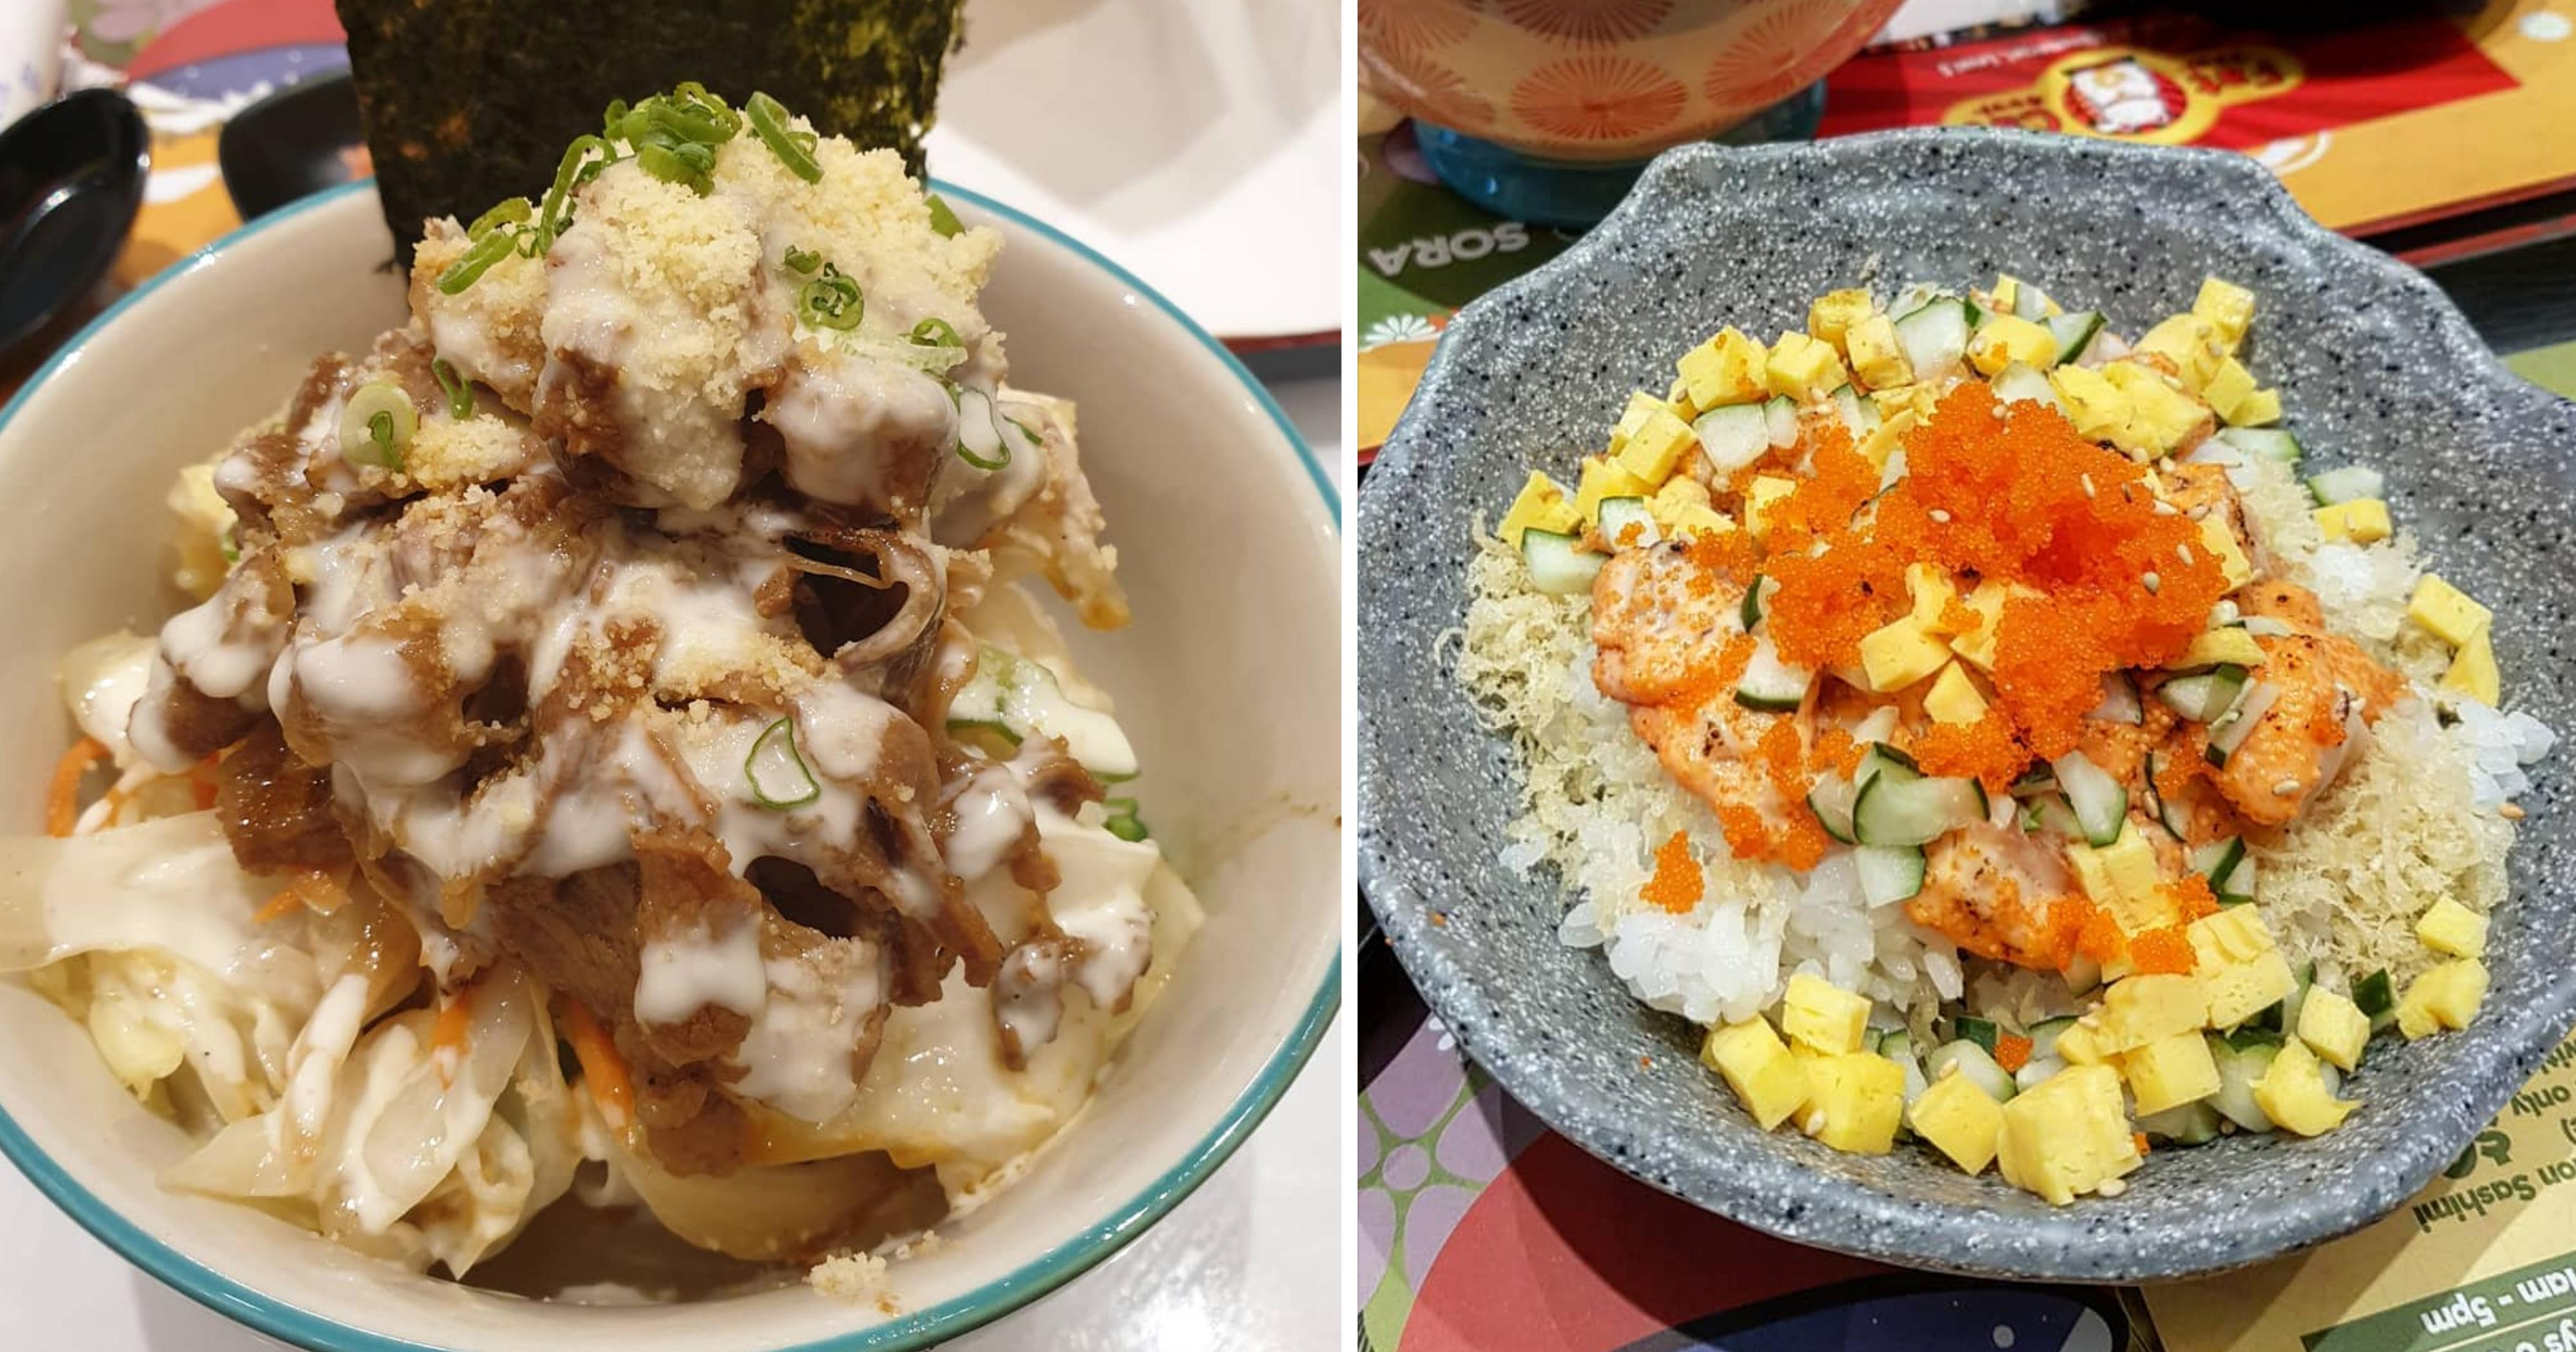 Halal Japanese Eatery In 313 Somerset Has Beef Don Chirashi Don From S 7 50 Mothership Sg News From Singapore Asia And Around The World